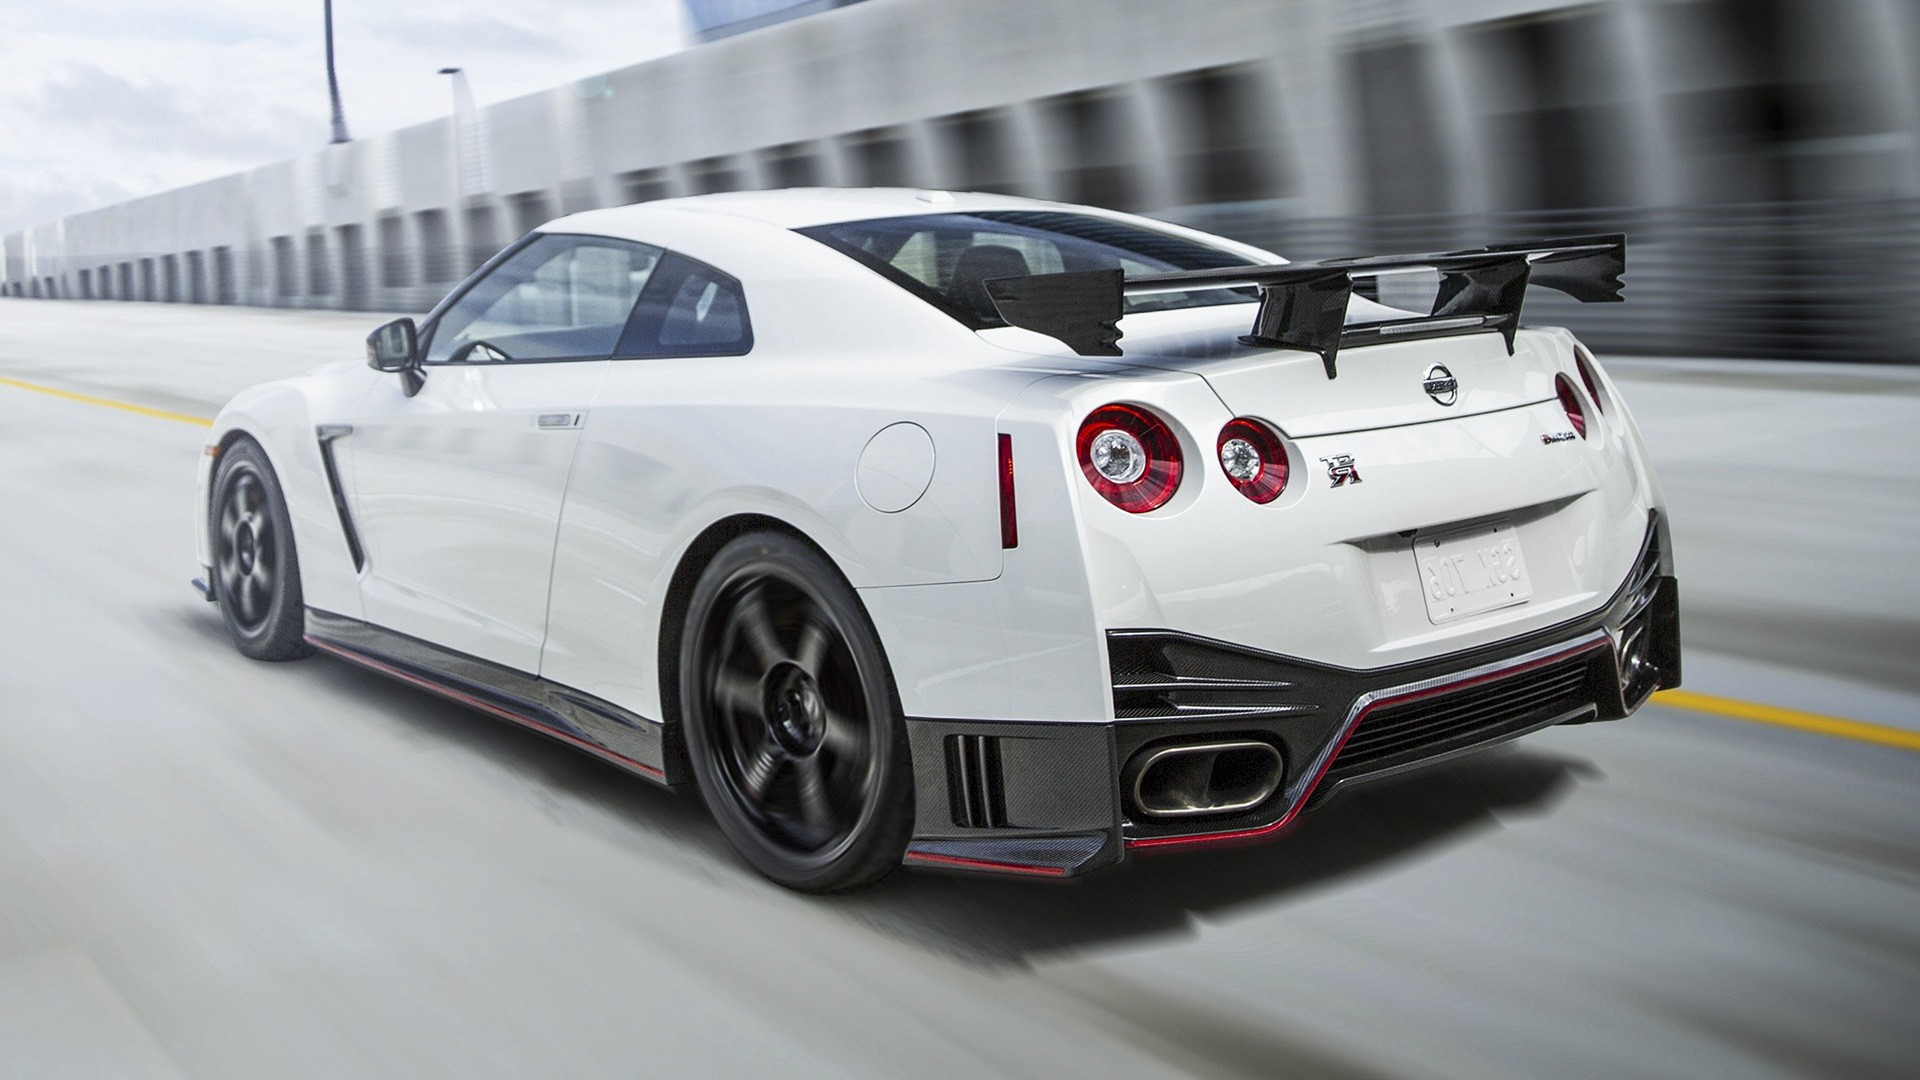 Res: 1920x1080, ... Nissan GT R Nismo Wallpapers for PC Desktop